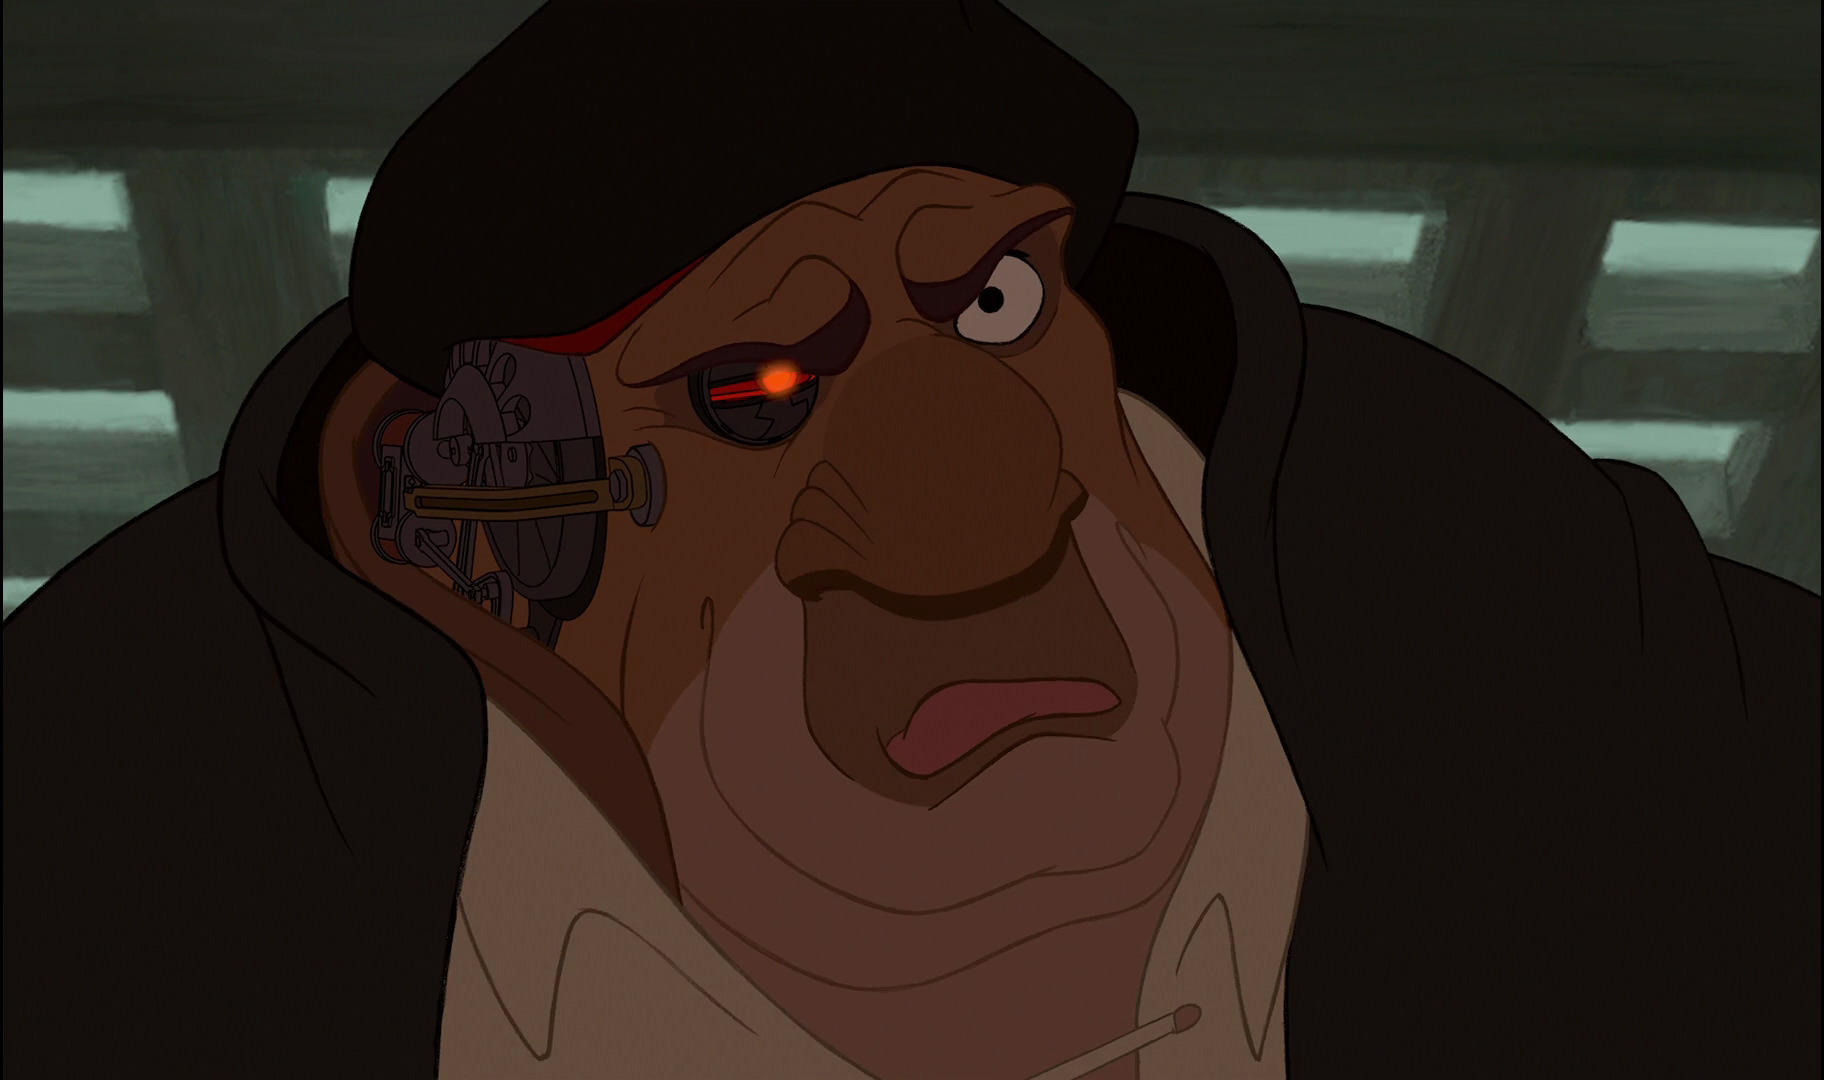 john silver personnage planete tresor character disney treasure